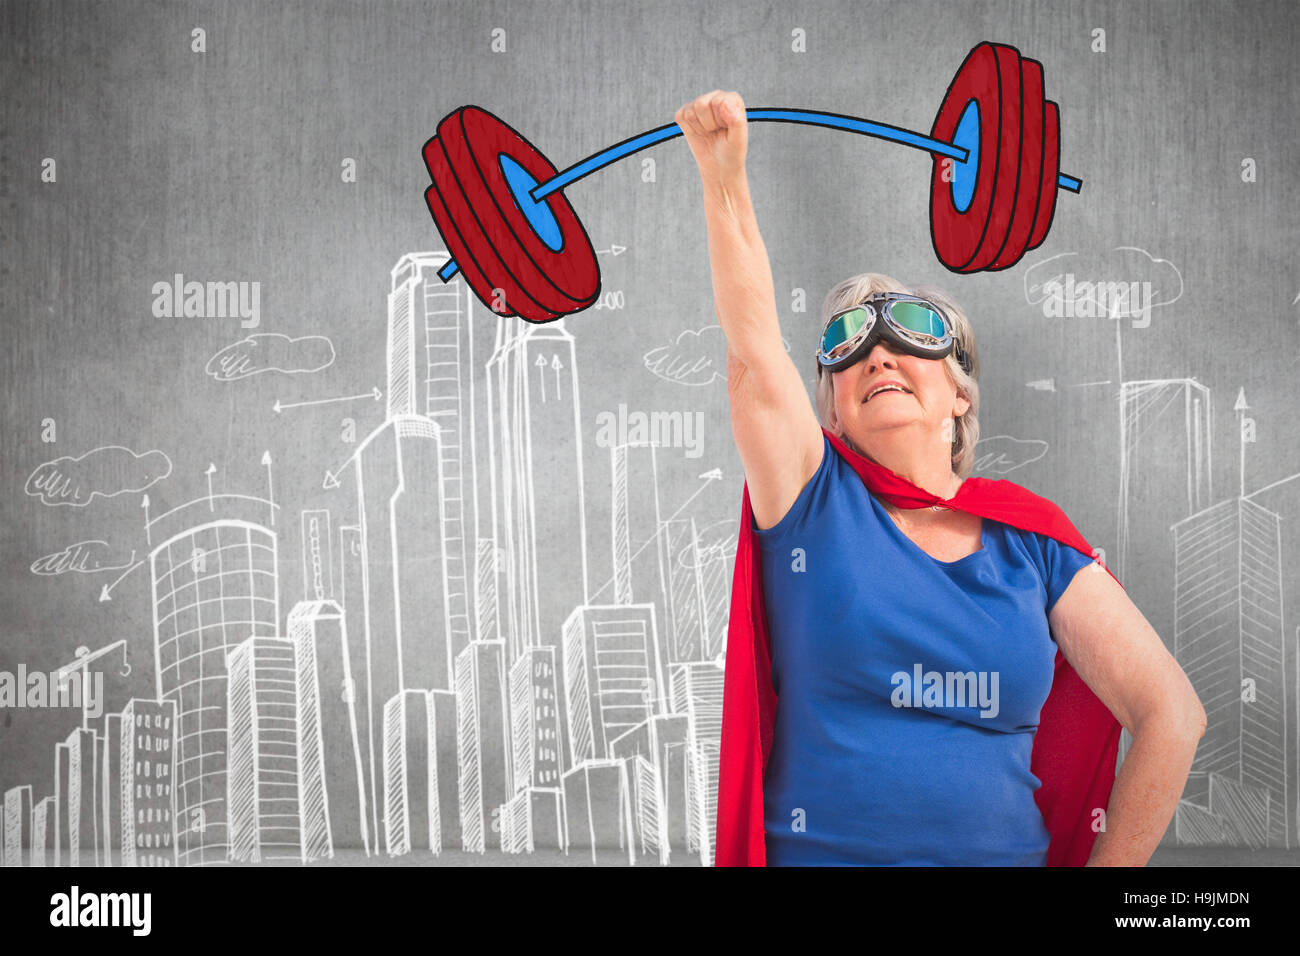 Composite image of senior woman disguise as superhero with hand raised - Stock Image